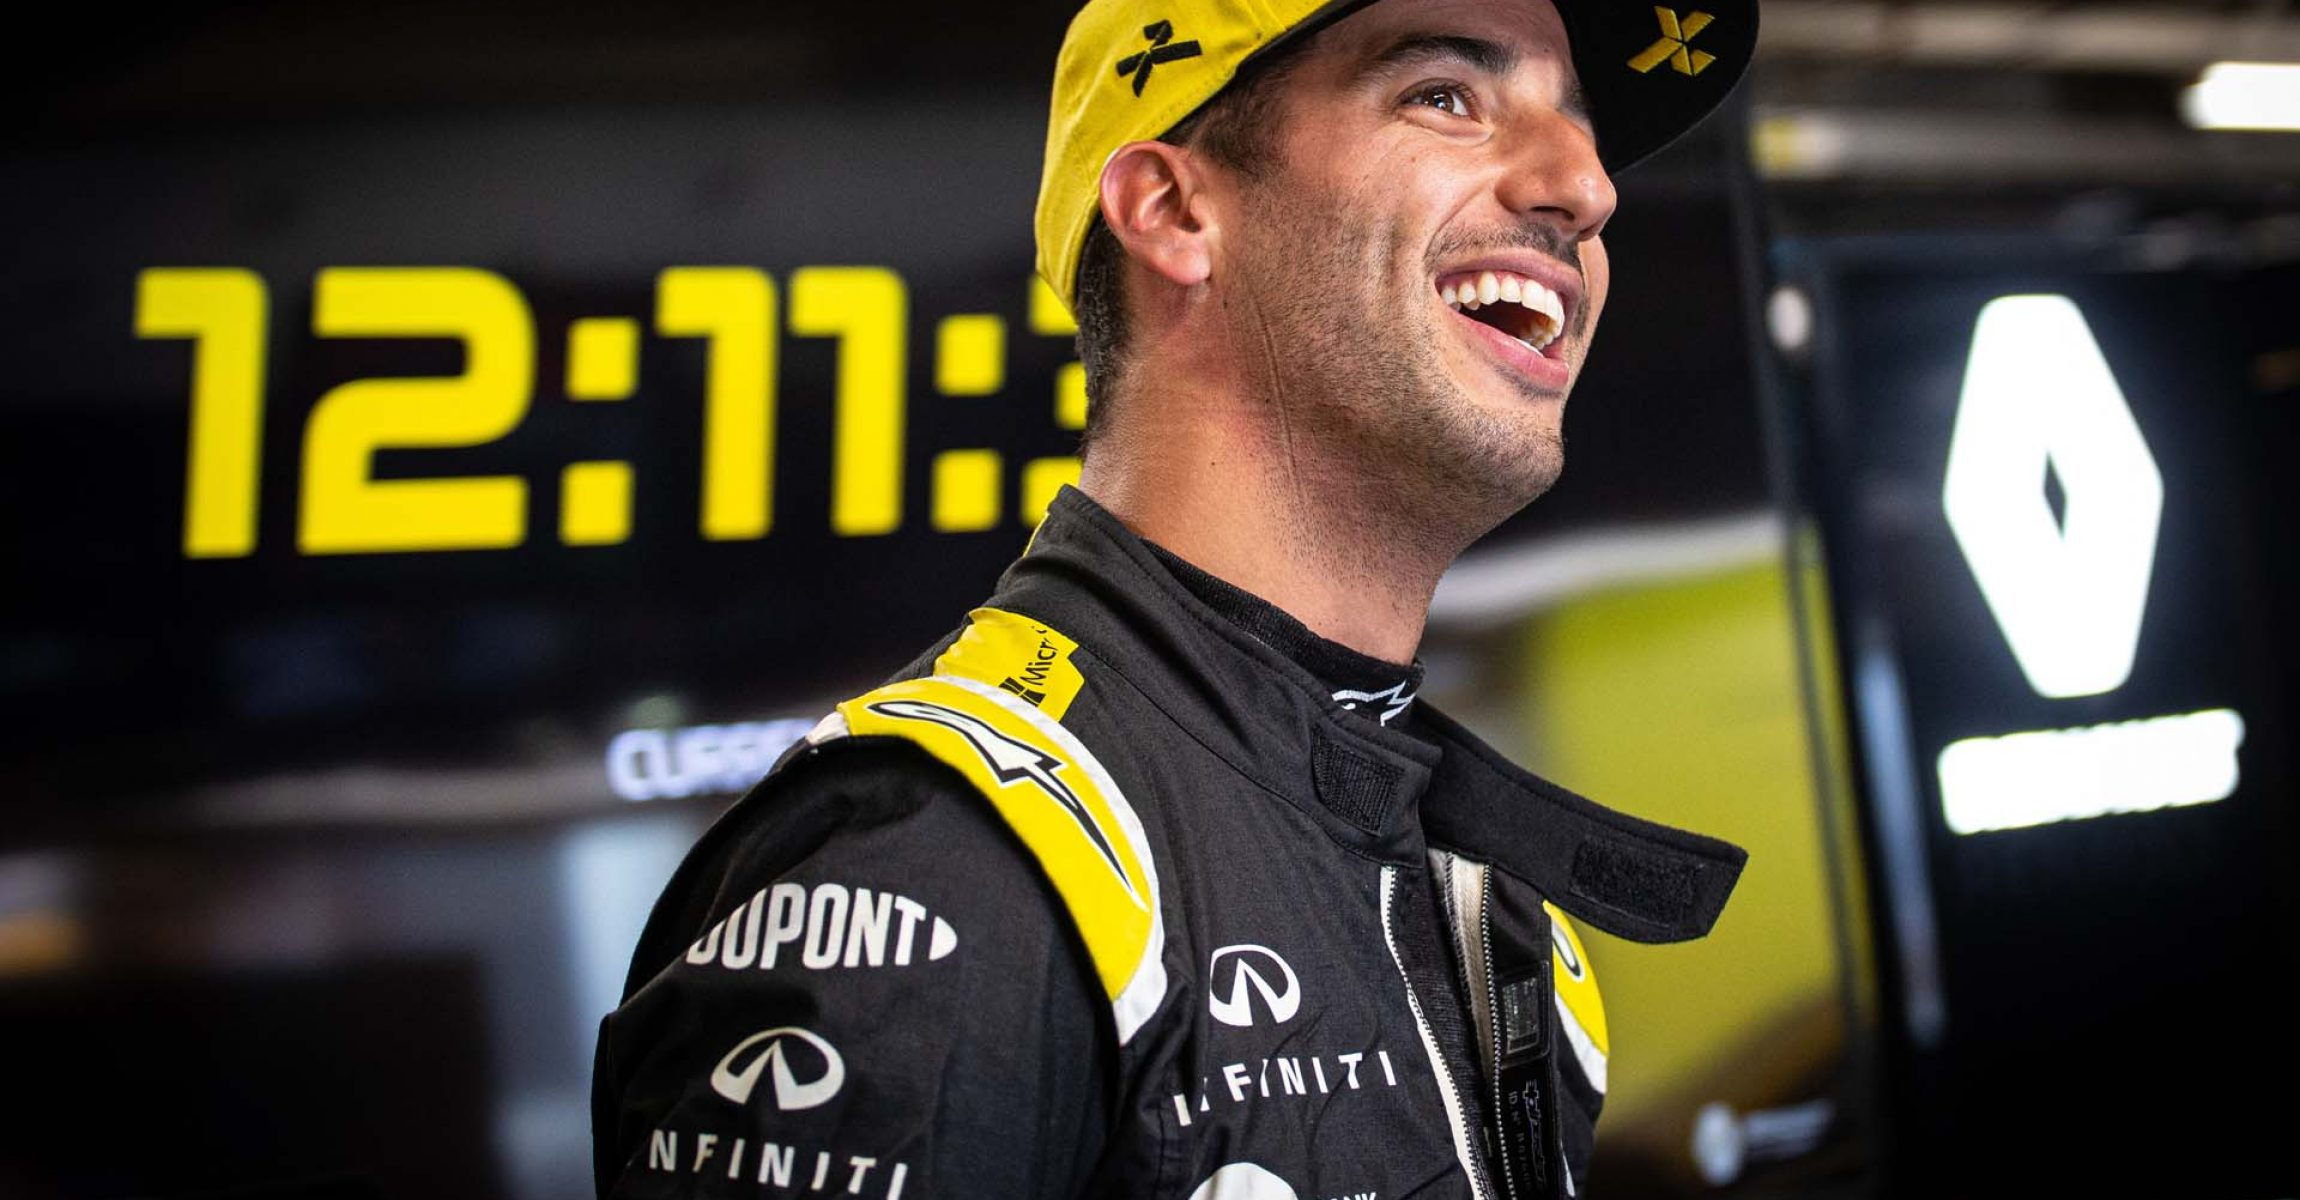 Daniel Ricciardo (AUS) Renault F1 Team. Canadian Grand Prix, Saturday 8th June 2019. Montreal, Canada.